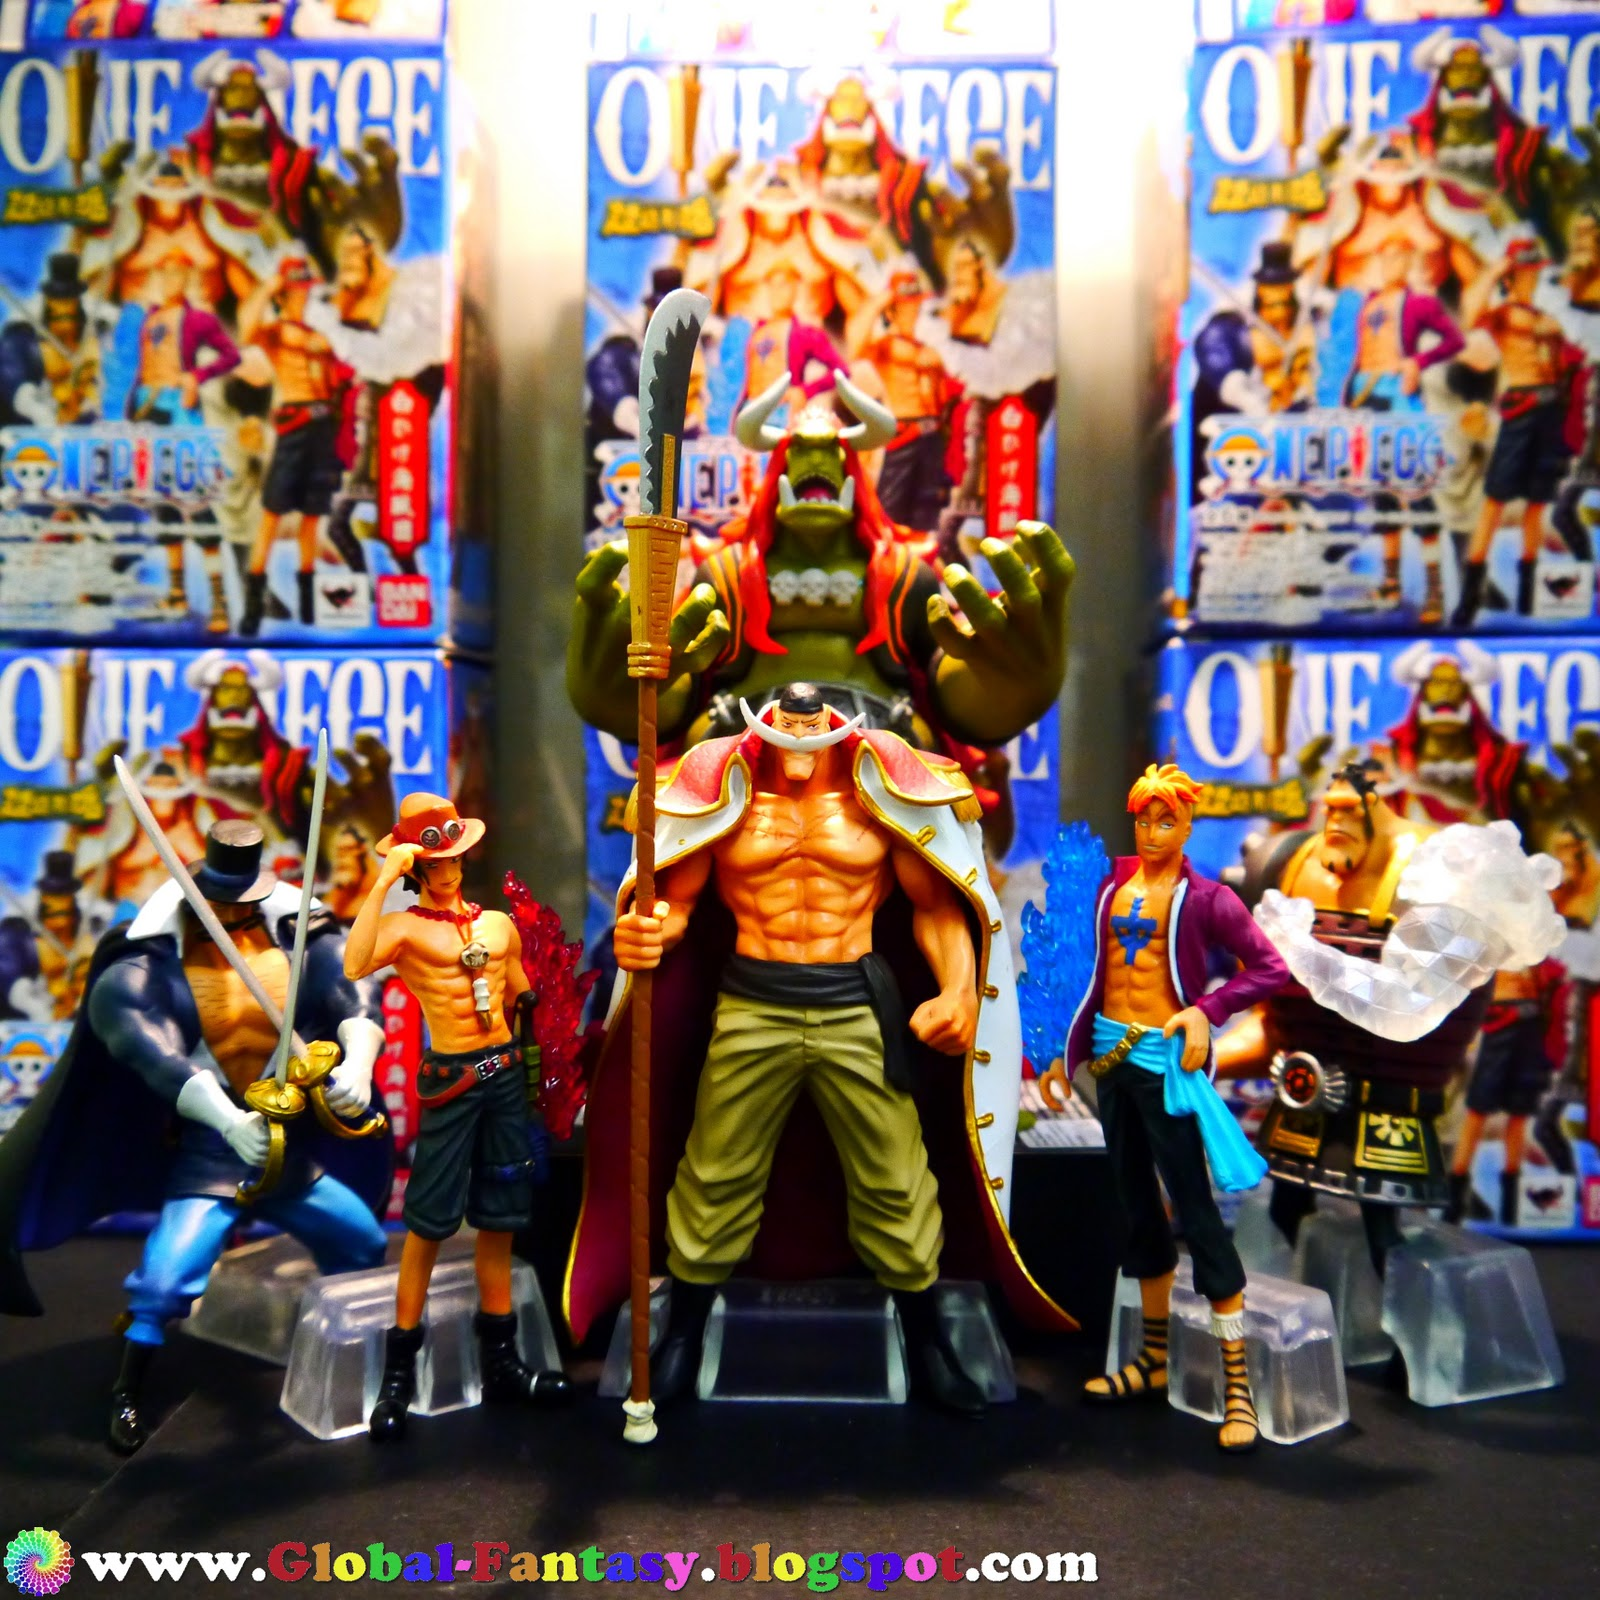 one piece bandai super modeling soul, whitebeard pirates | global